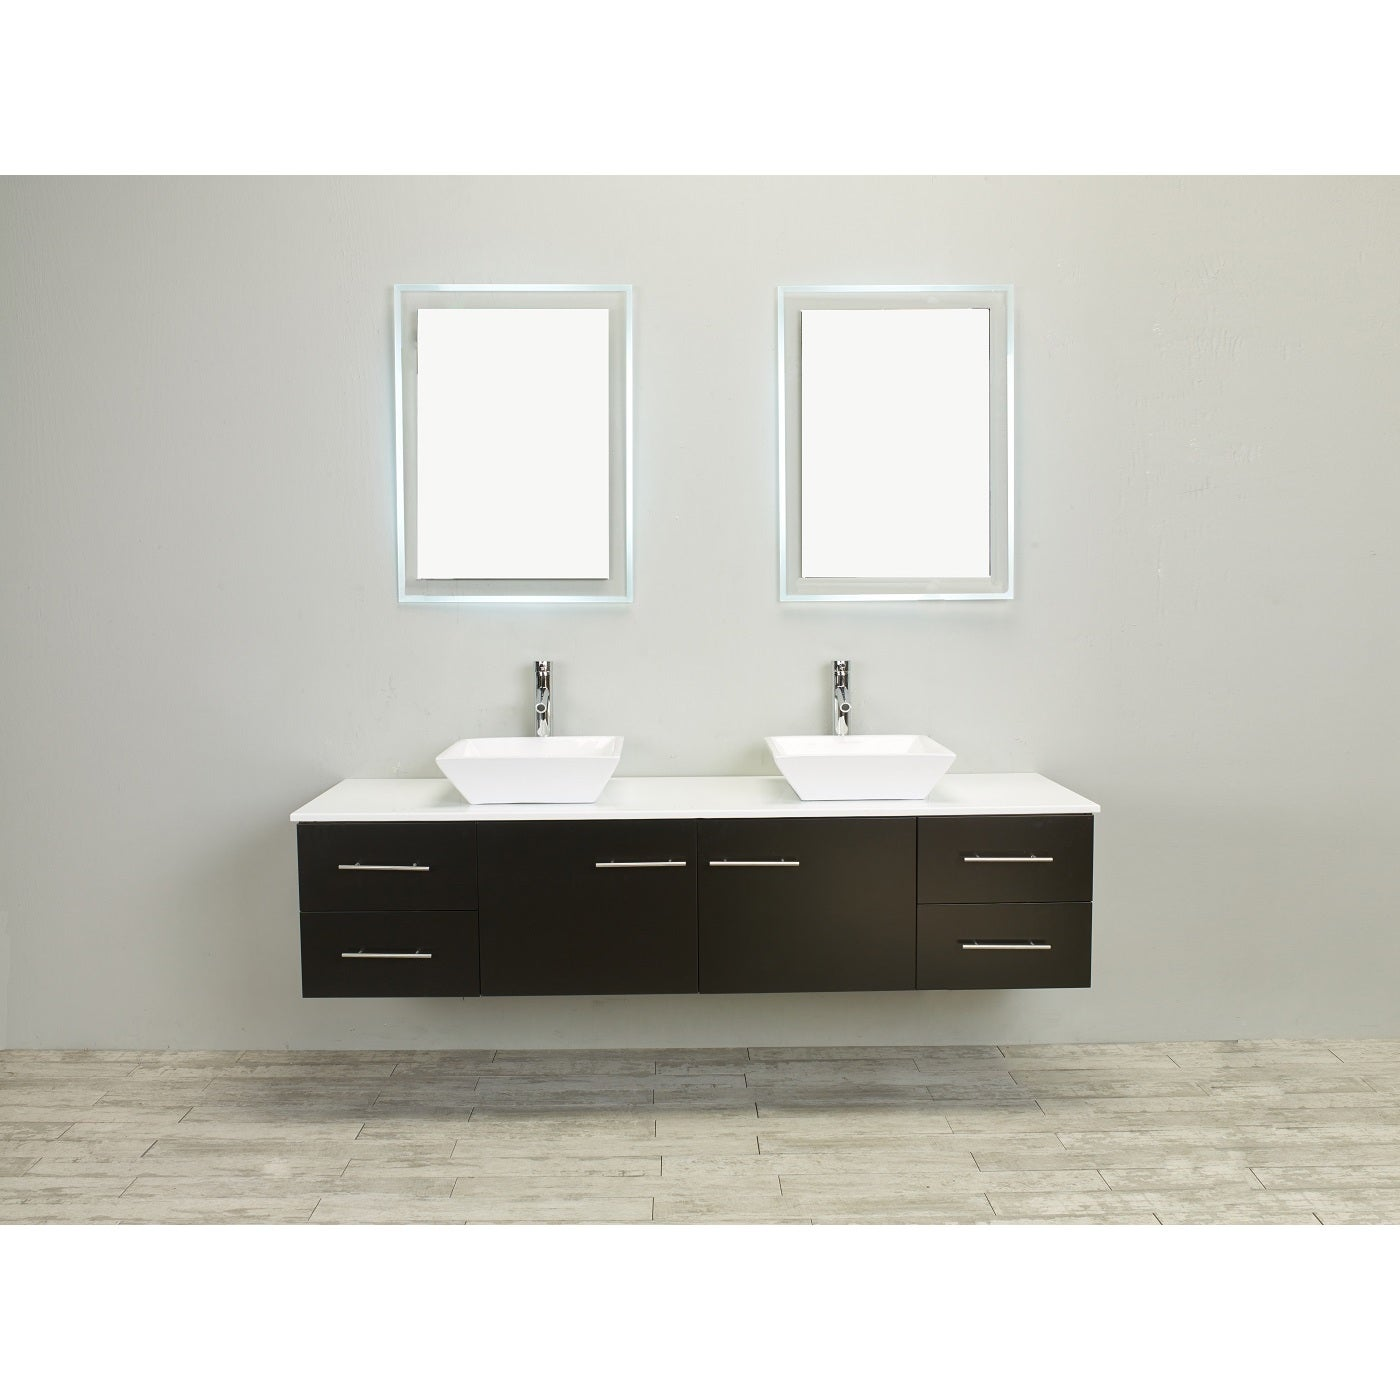 Shop totti wave 60 inch espresso modern bathroom vanity with counter top and double sinks free shipping today overstock com 12226721